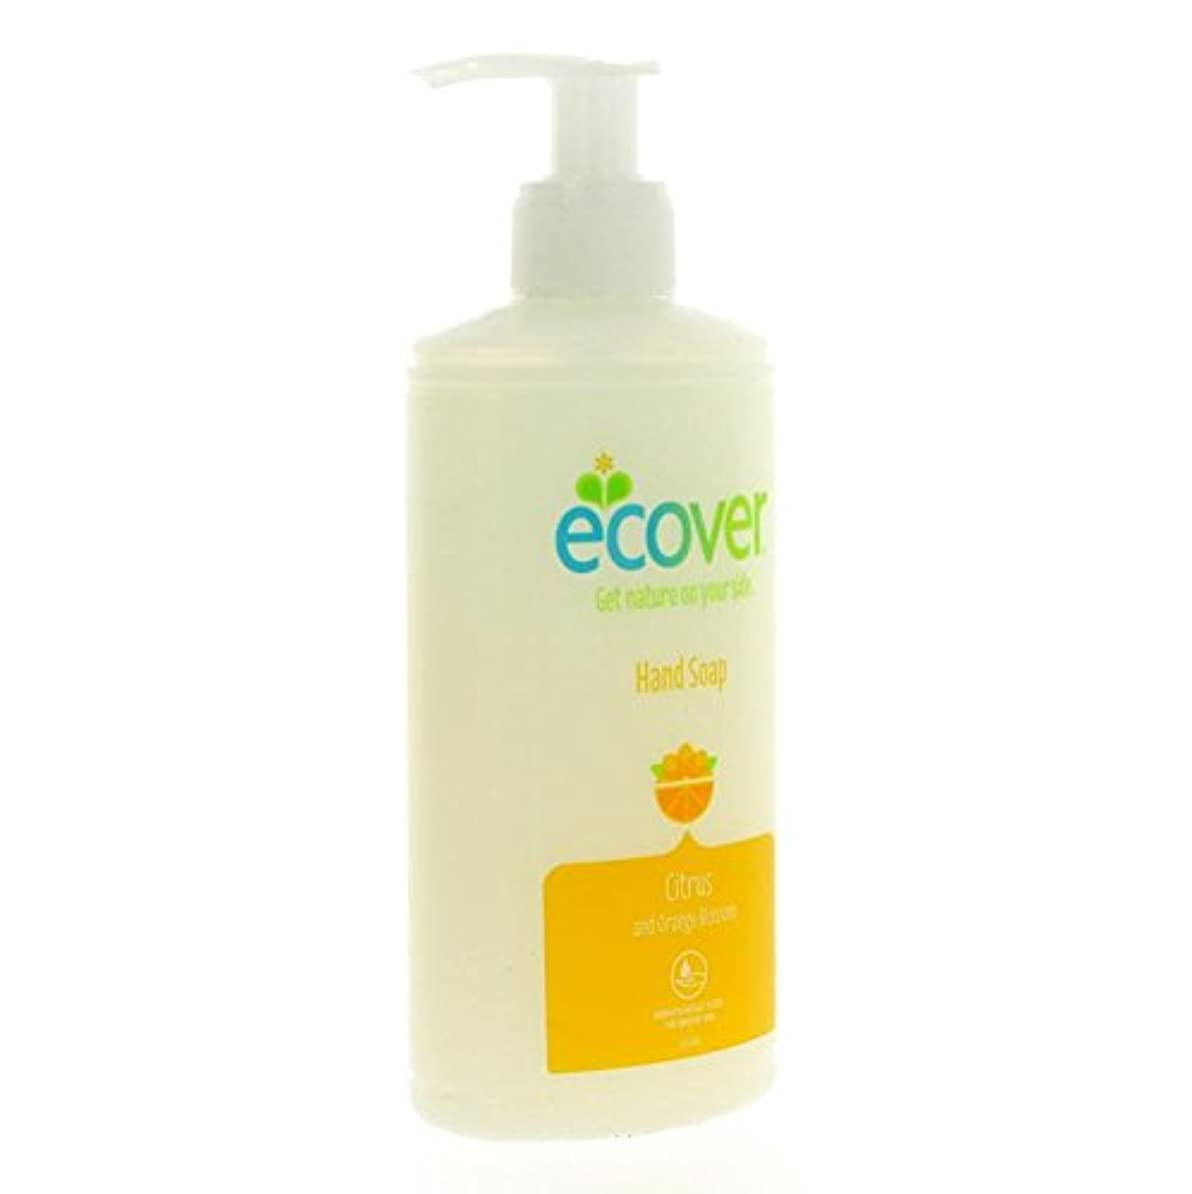 ガイダンス例外弱まるEcover - Hand Soap - Citrus and Orange Blossom - 250ml (Case of 6)